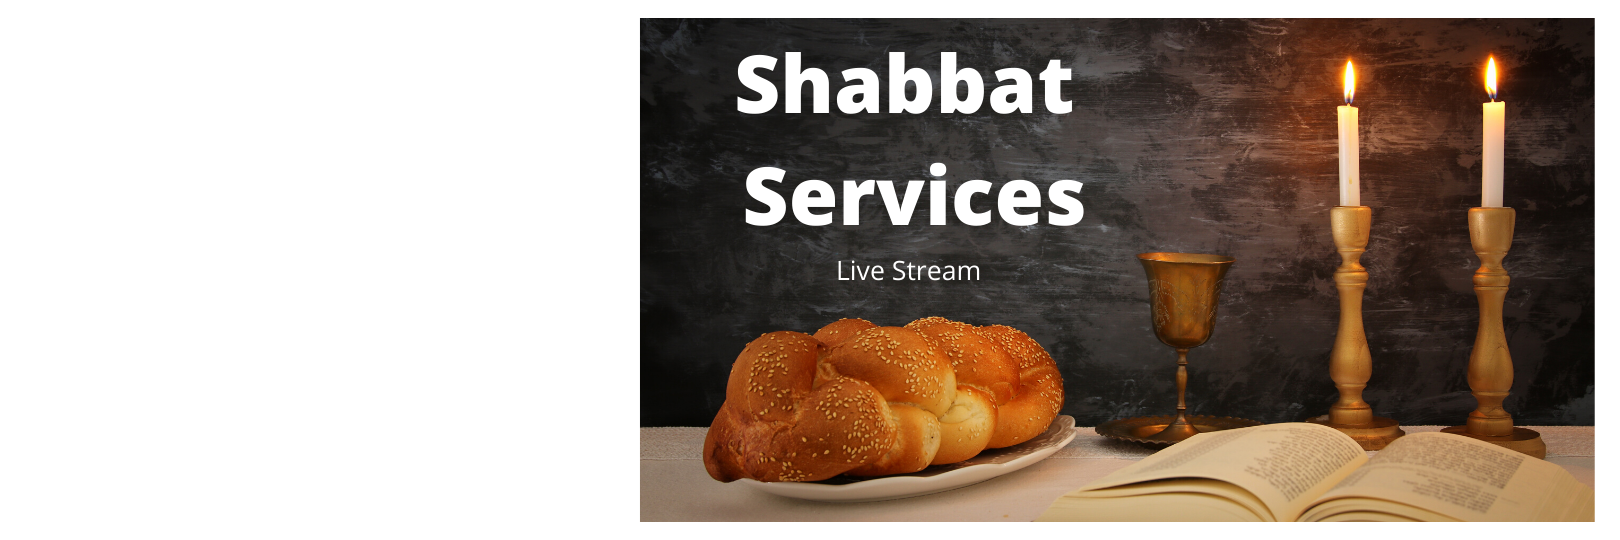 "<a href=""https://www.templebethemet.org/program-updates.html""